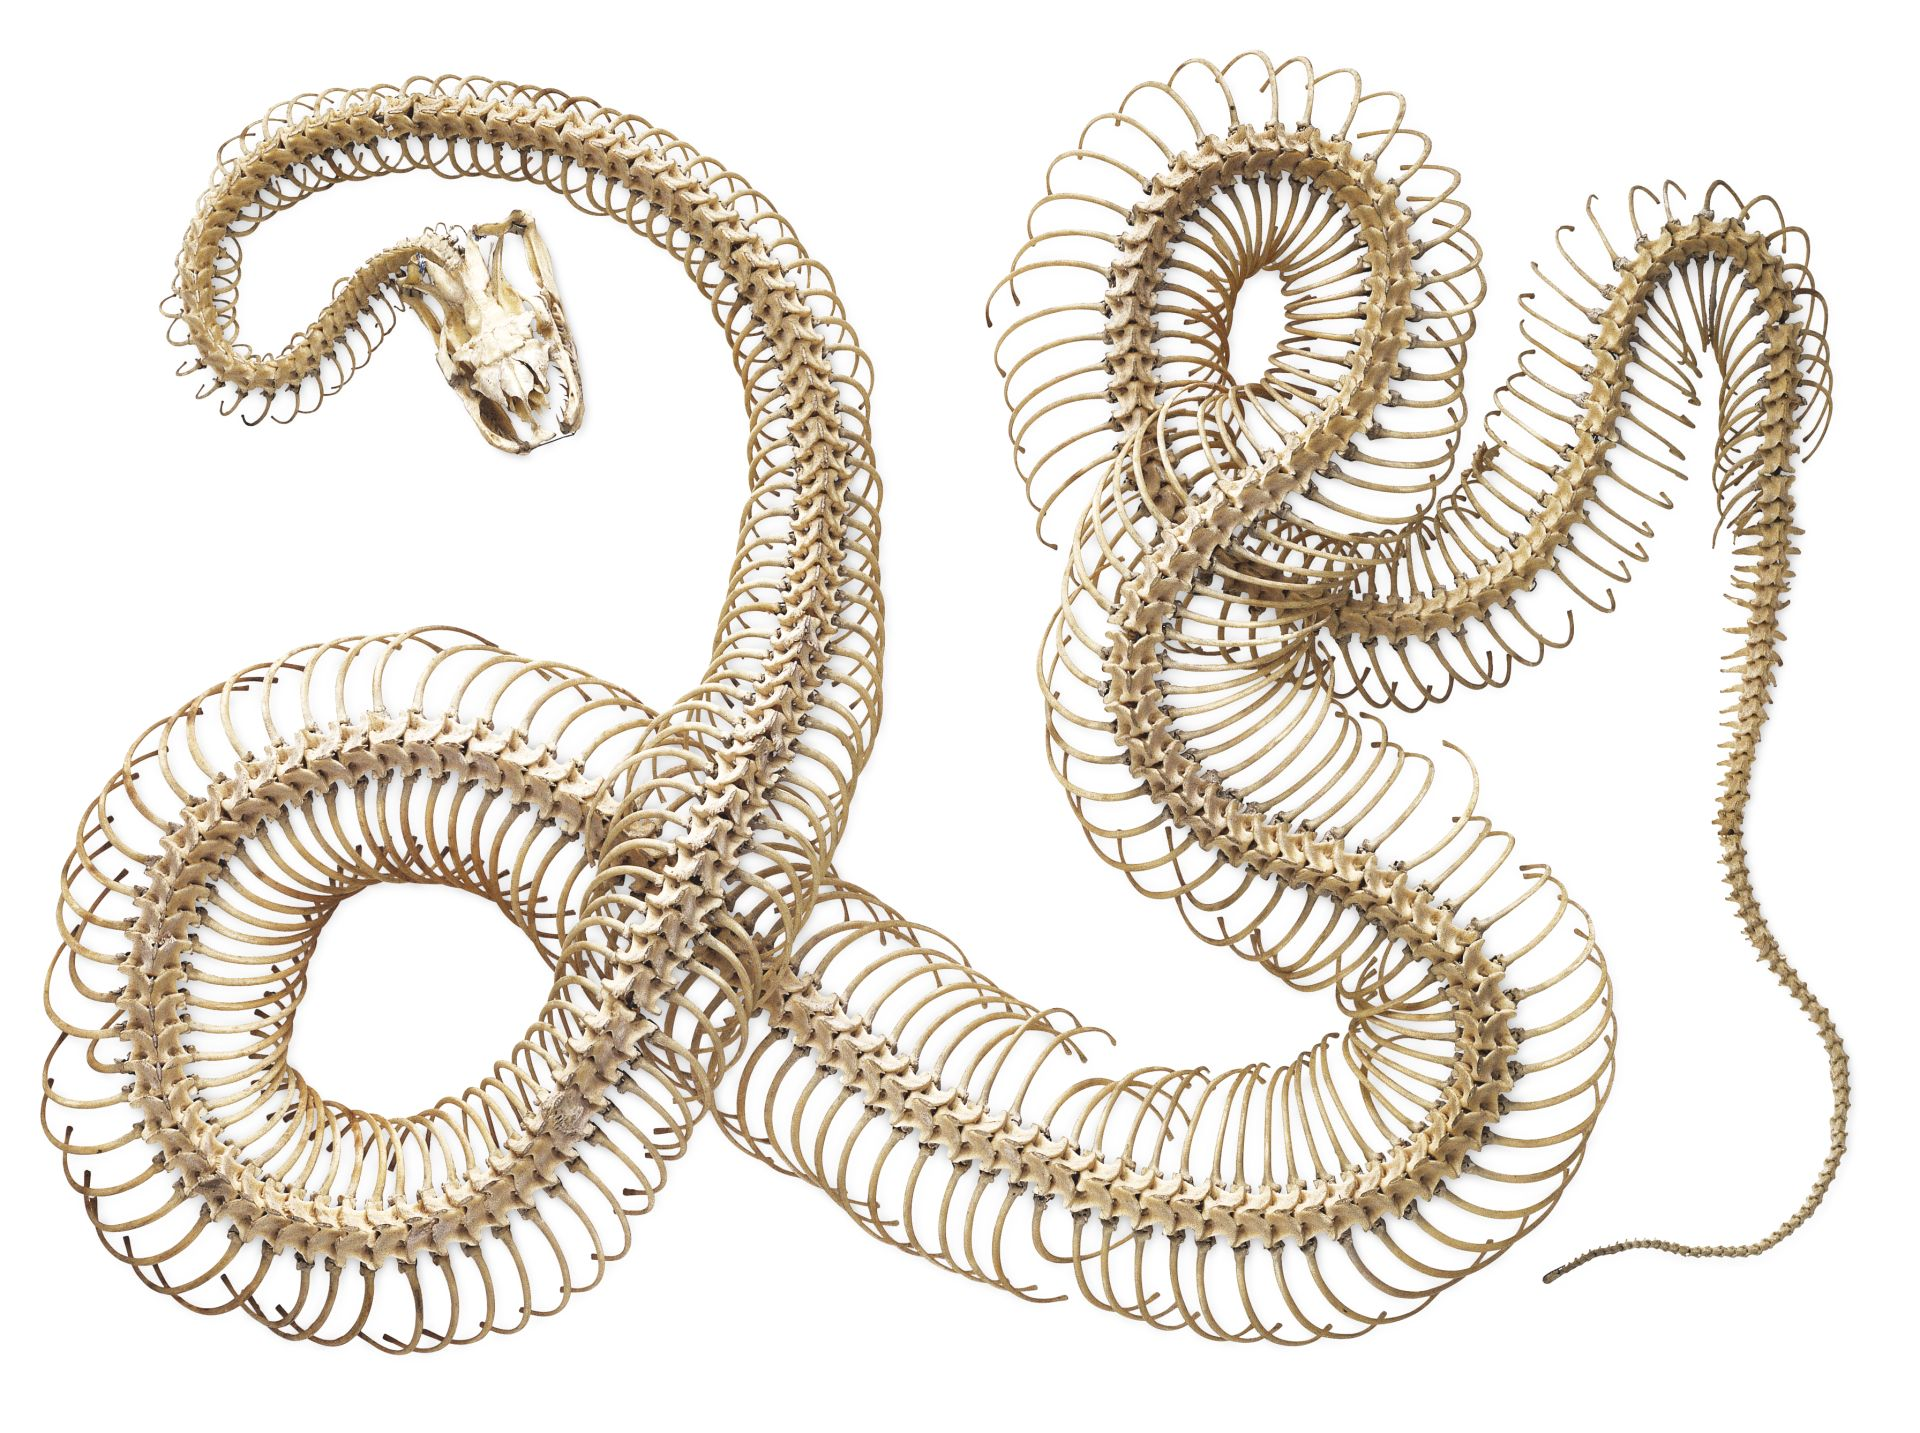 Miraculous Snake Skeletons Information About Snakes Dk Find Out Wiring Digital Resources Jebrpcompassionincorg